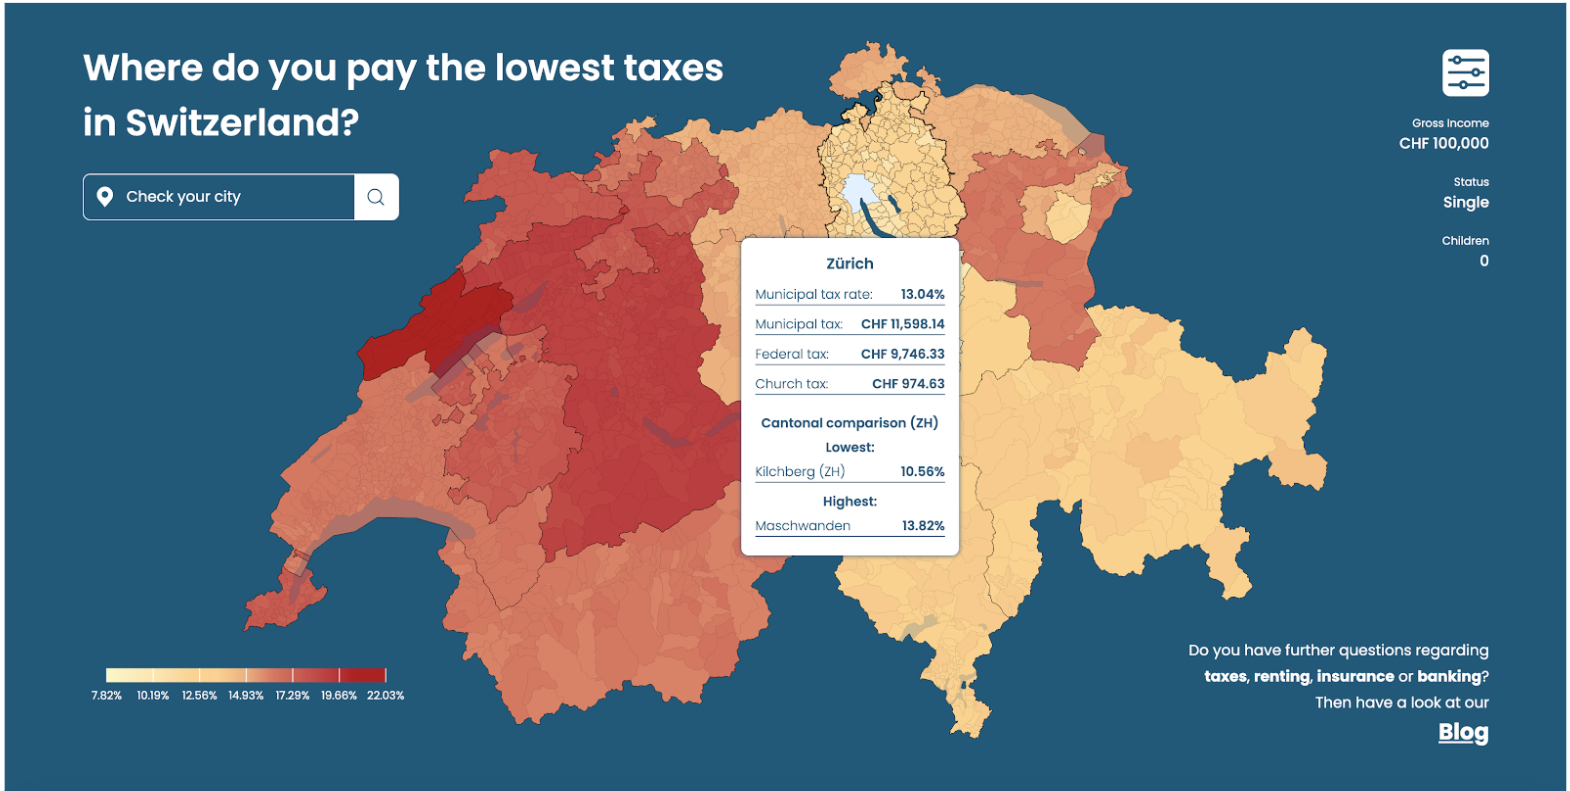 Final student project TaxJungle: tax map Zurich